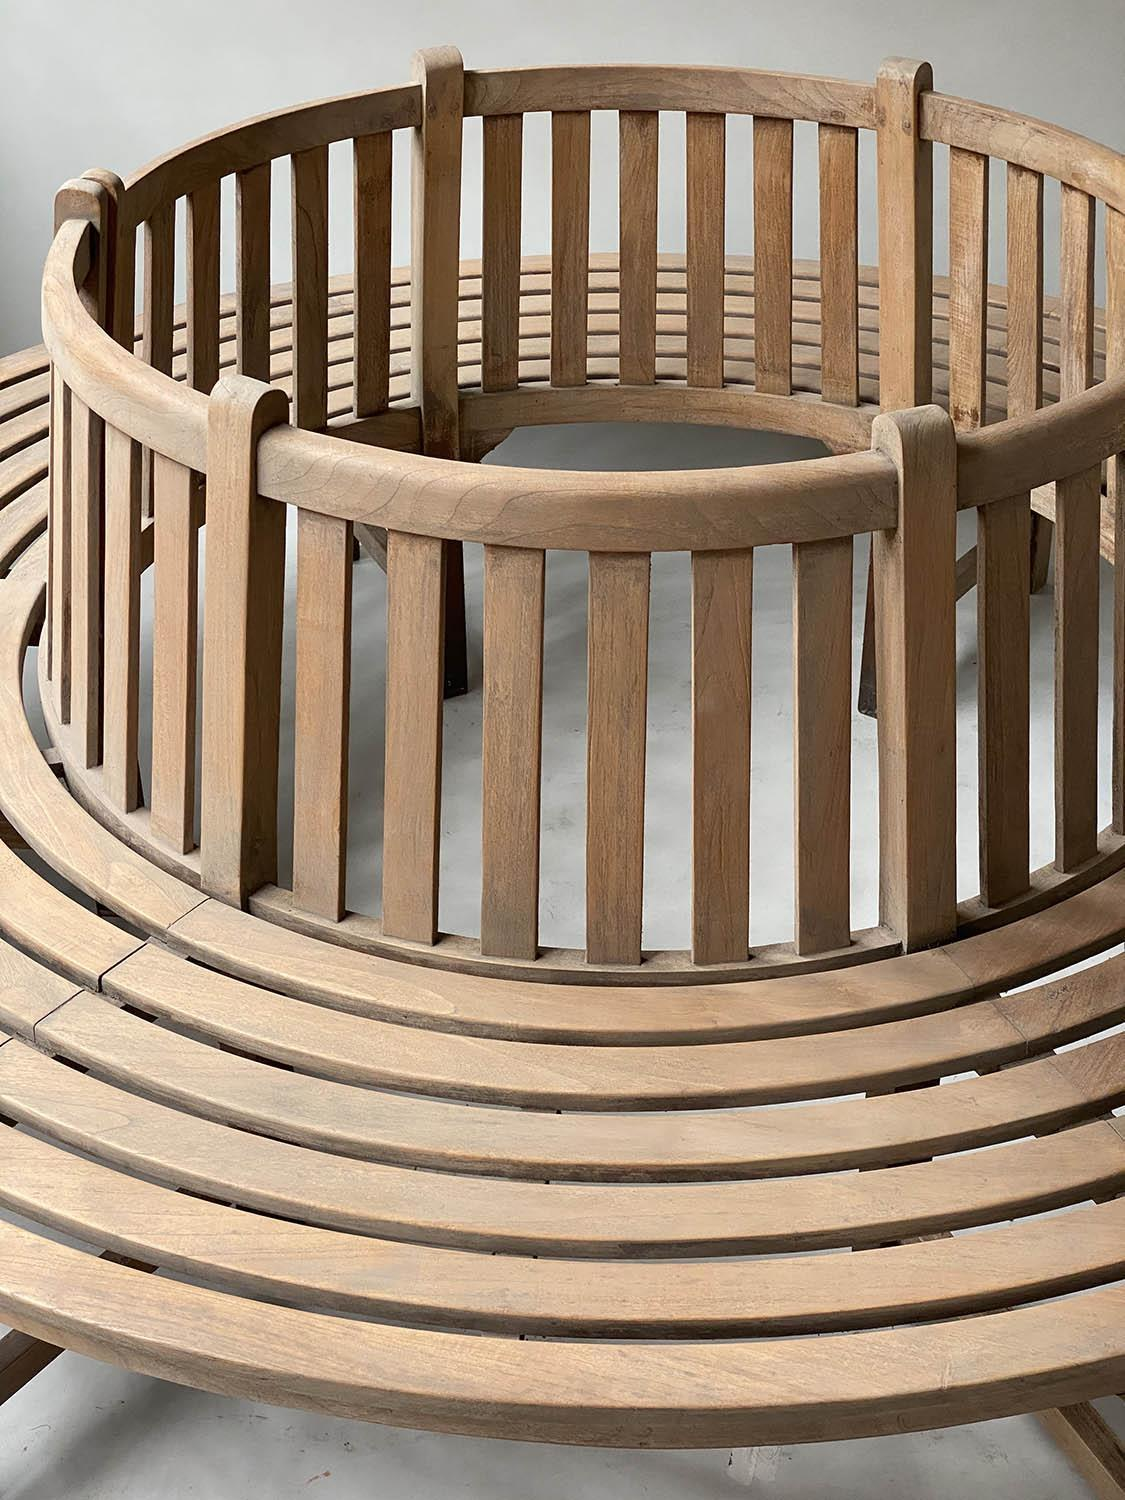 TREE BENCH, weathered teak and slatted in two sections of concentric slats and raised back rest, - Image 4 of 7